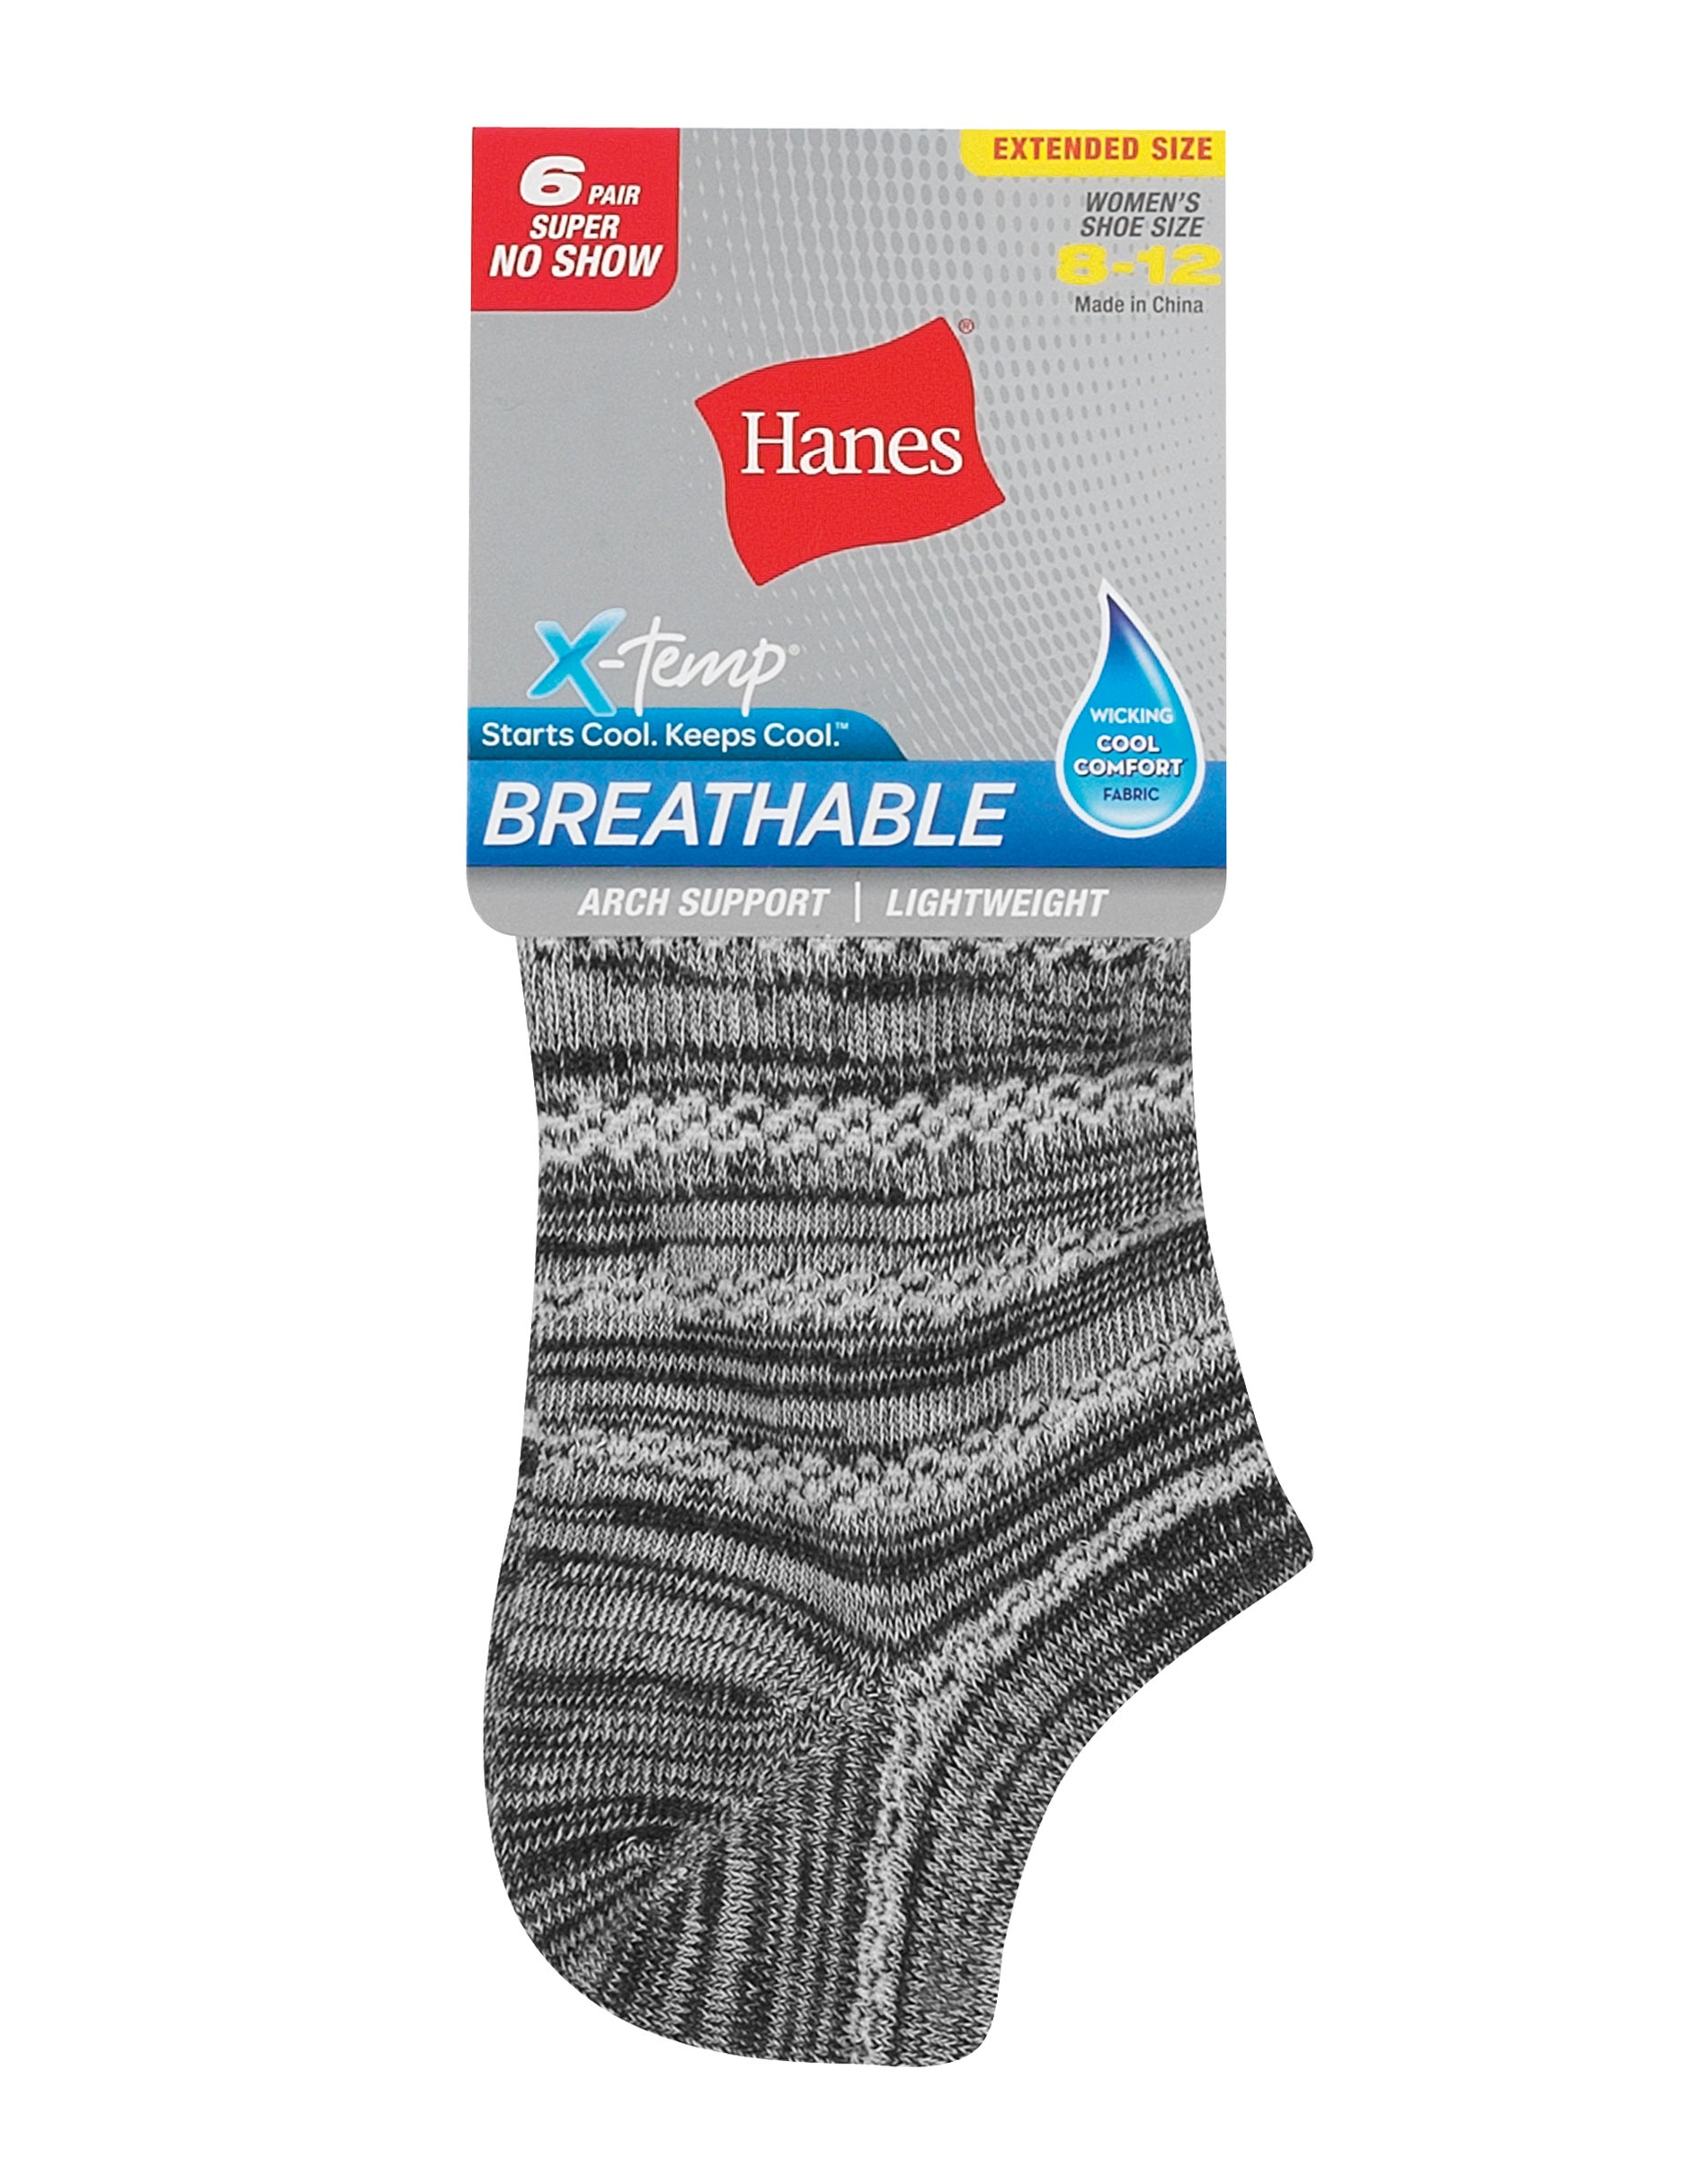 Hanes No Show Socks 6-Pack Sport Womens Cool Comfort Arch support 5-9 6 Pair